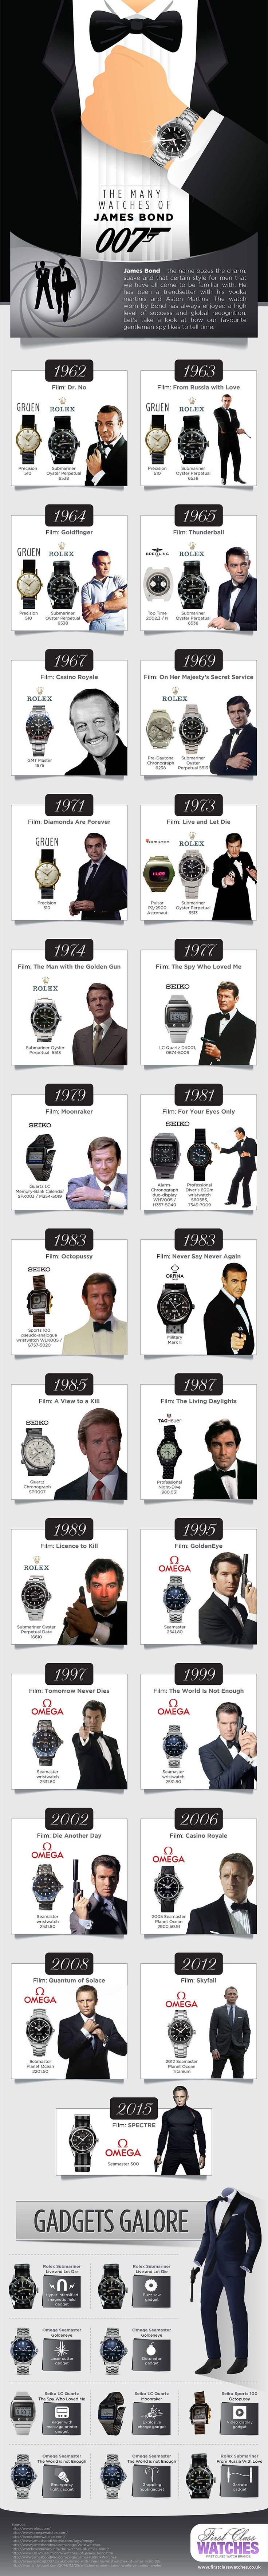 To celebrate the launch of the new James Bond Spectre film we are taking a trip down memory lane with our latest infographic. Over the years the fashions of #James #Bond may have changed but the #gadgets and sophistication remain very much in timing with everyone's favourite secret agent.